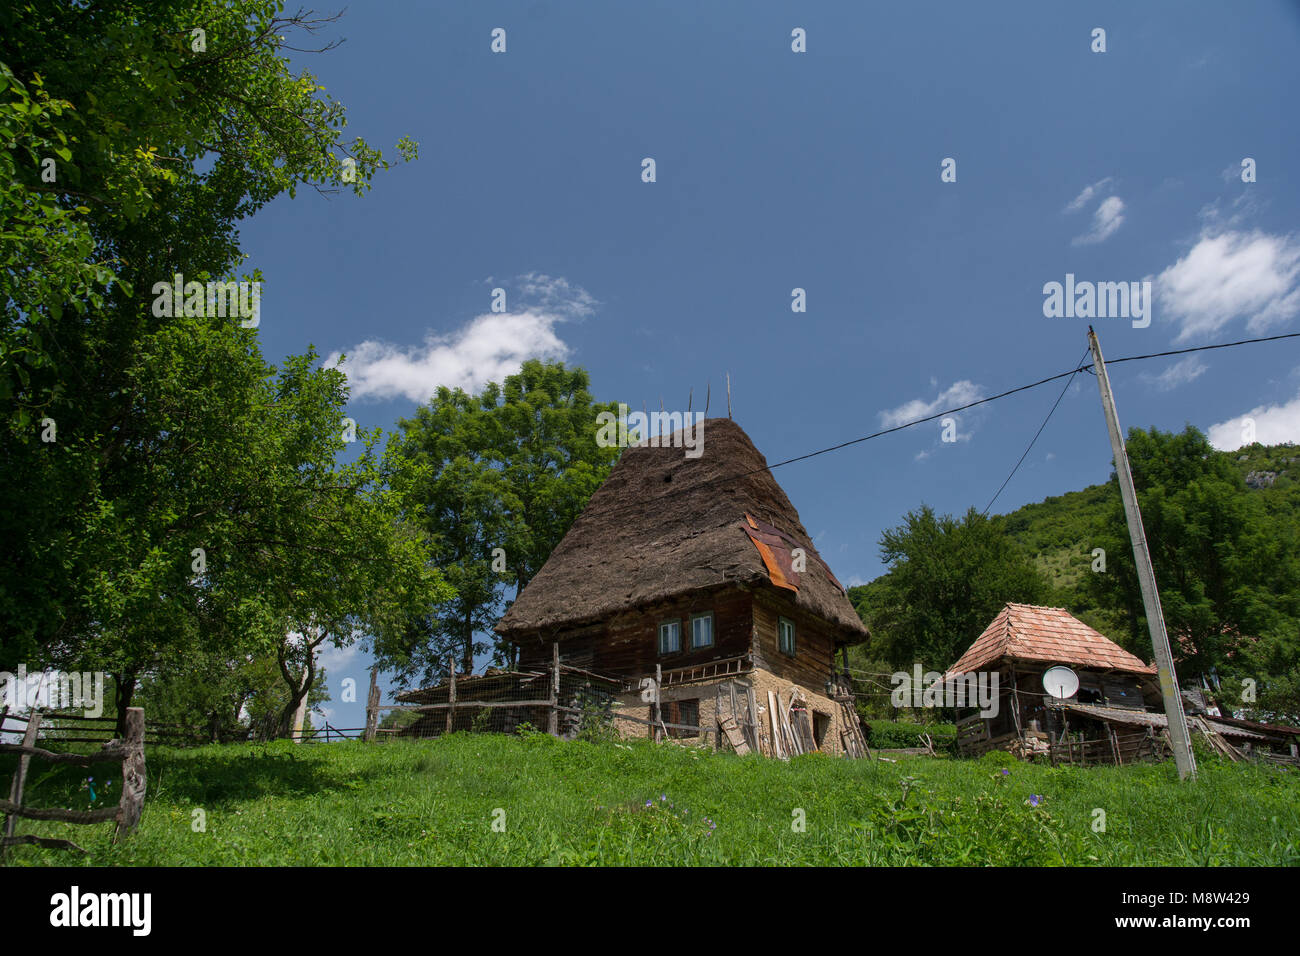 Traditional Wood House Covered With Straw In Apuseni Mountains Stock Photo:  177572929   Alamy